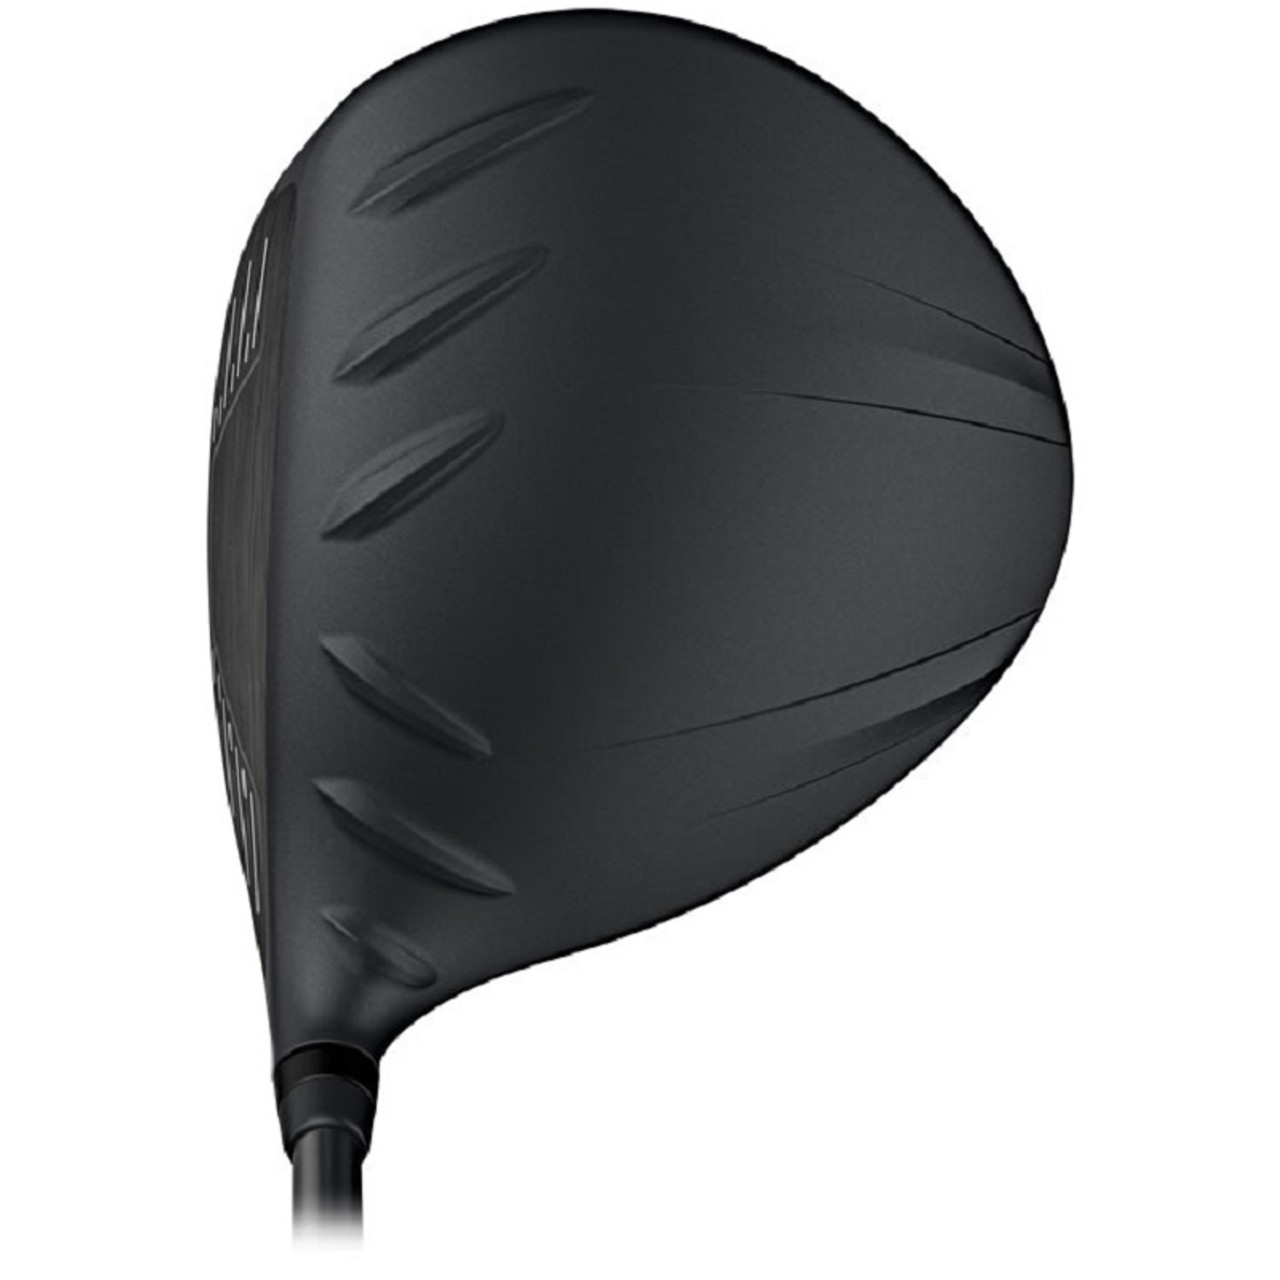 Ping G410 Plus Driver